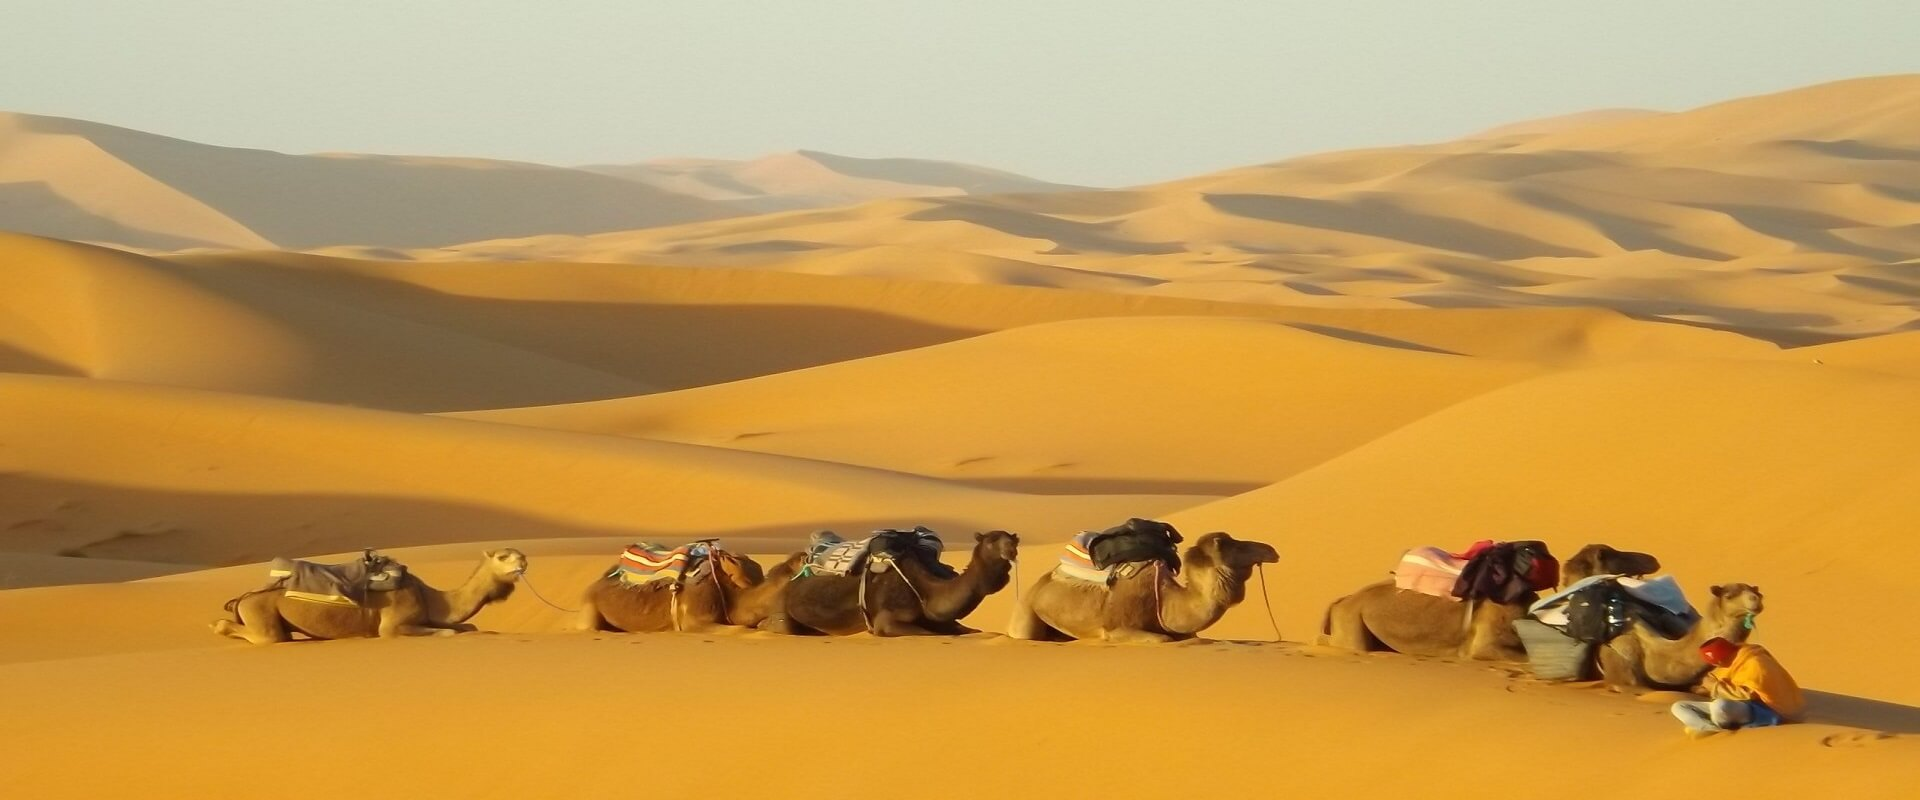 group of camels lying sand